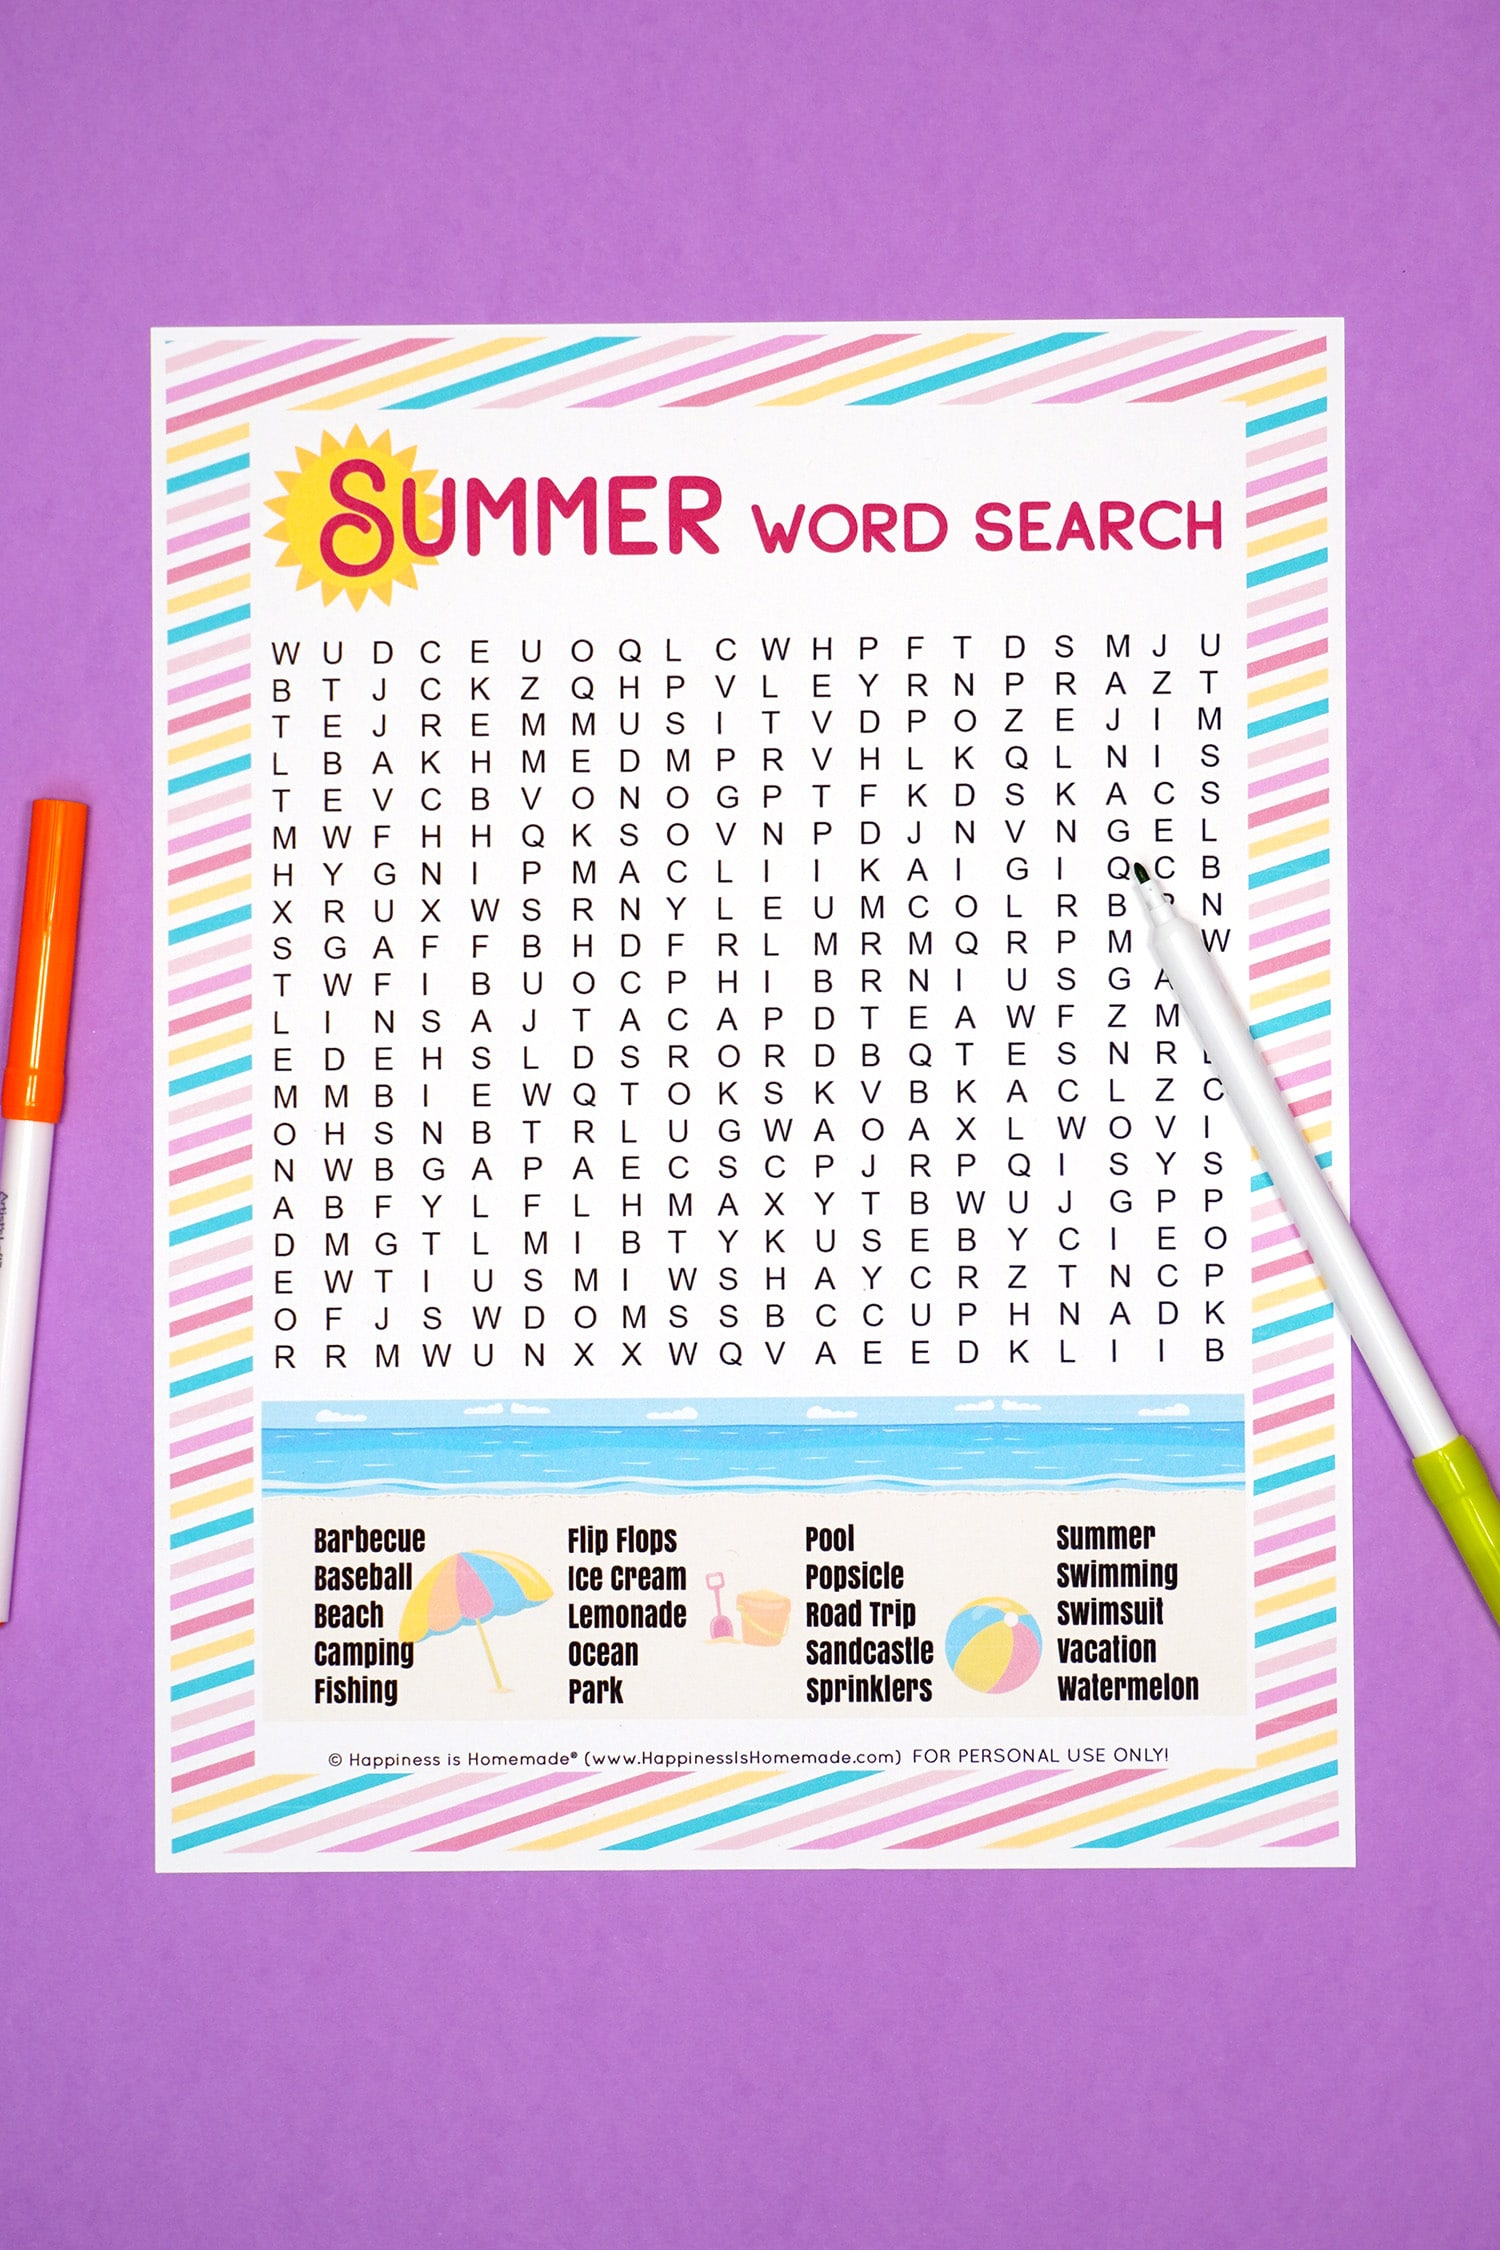 Summer Word Search printable on purple background with orange and green markers